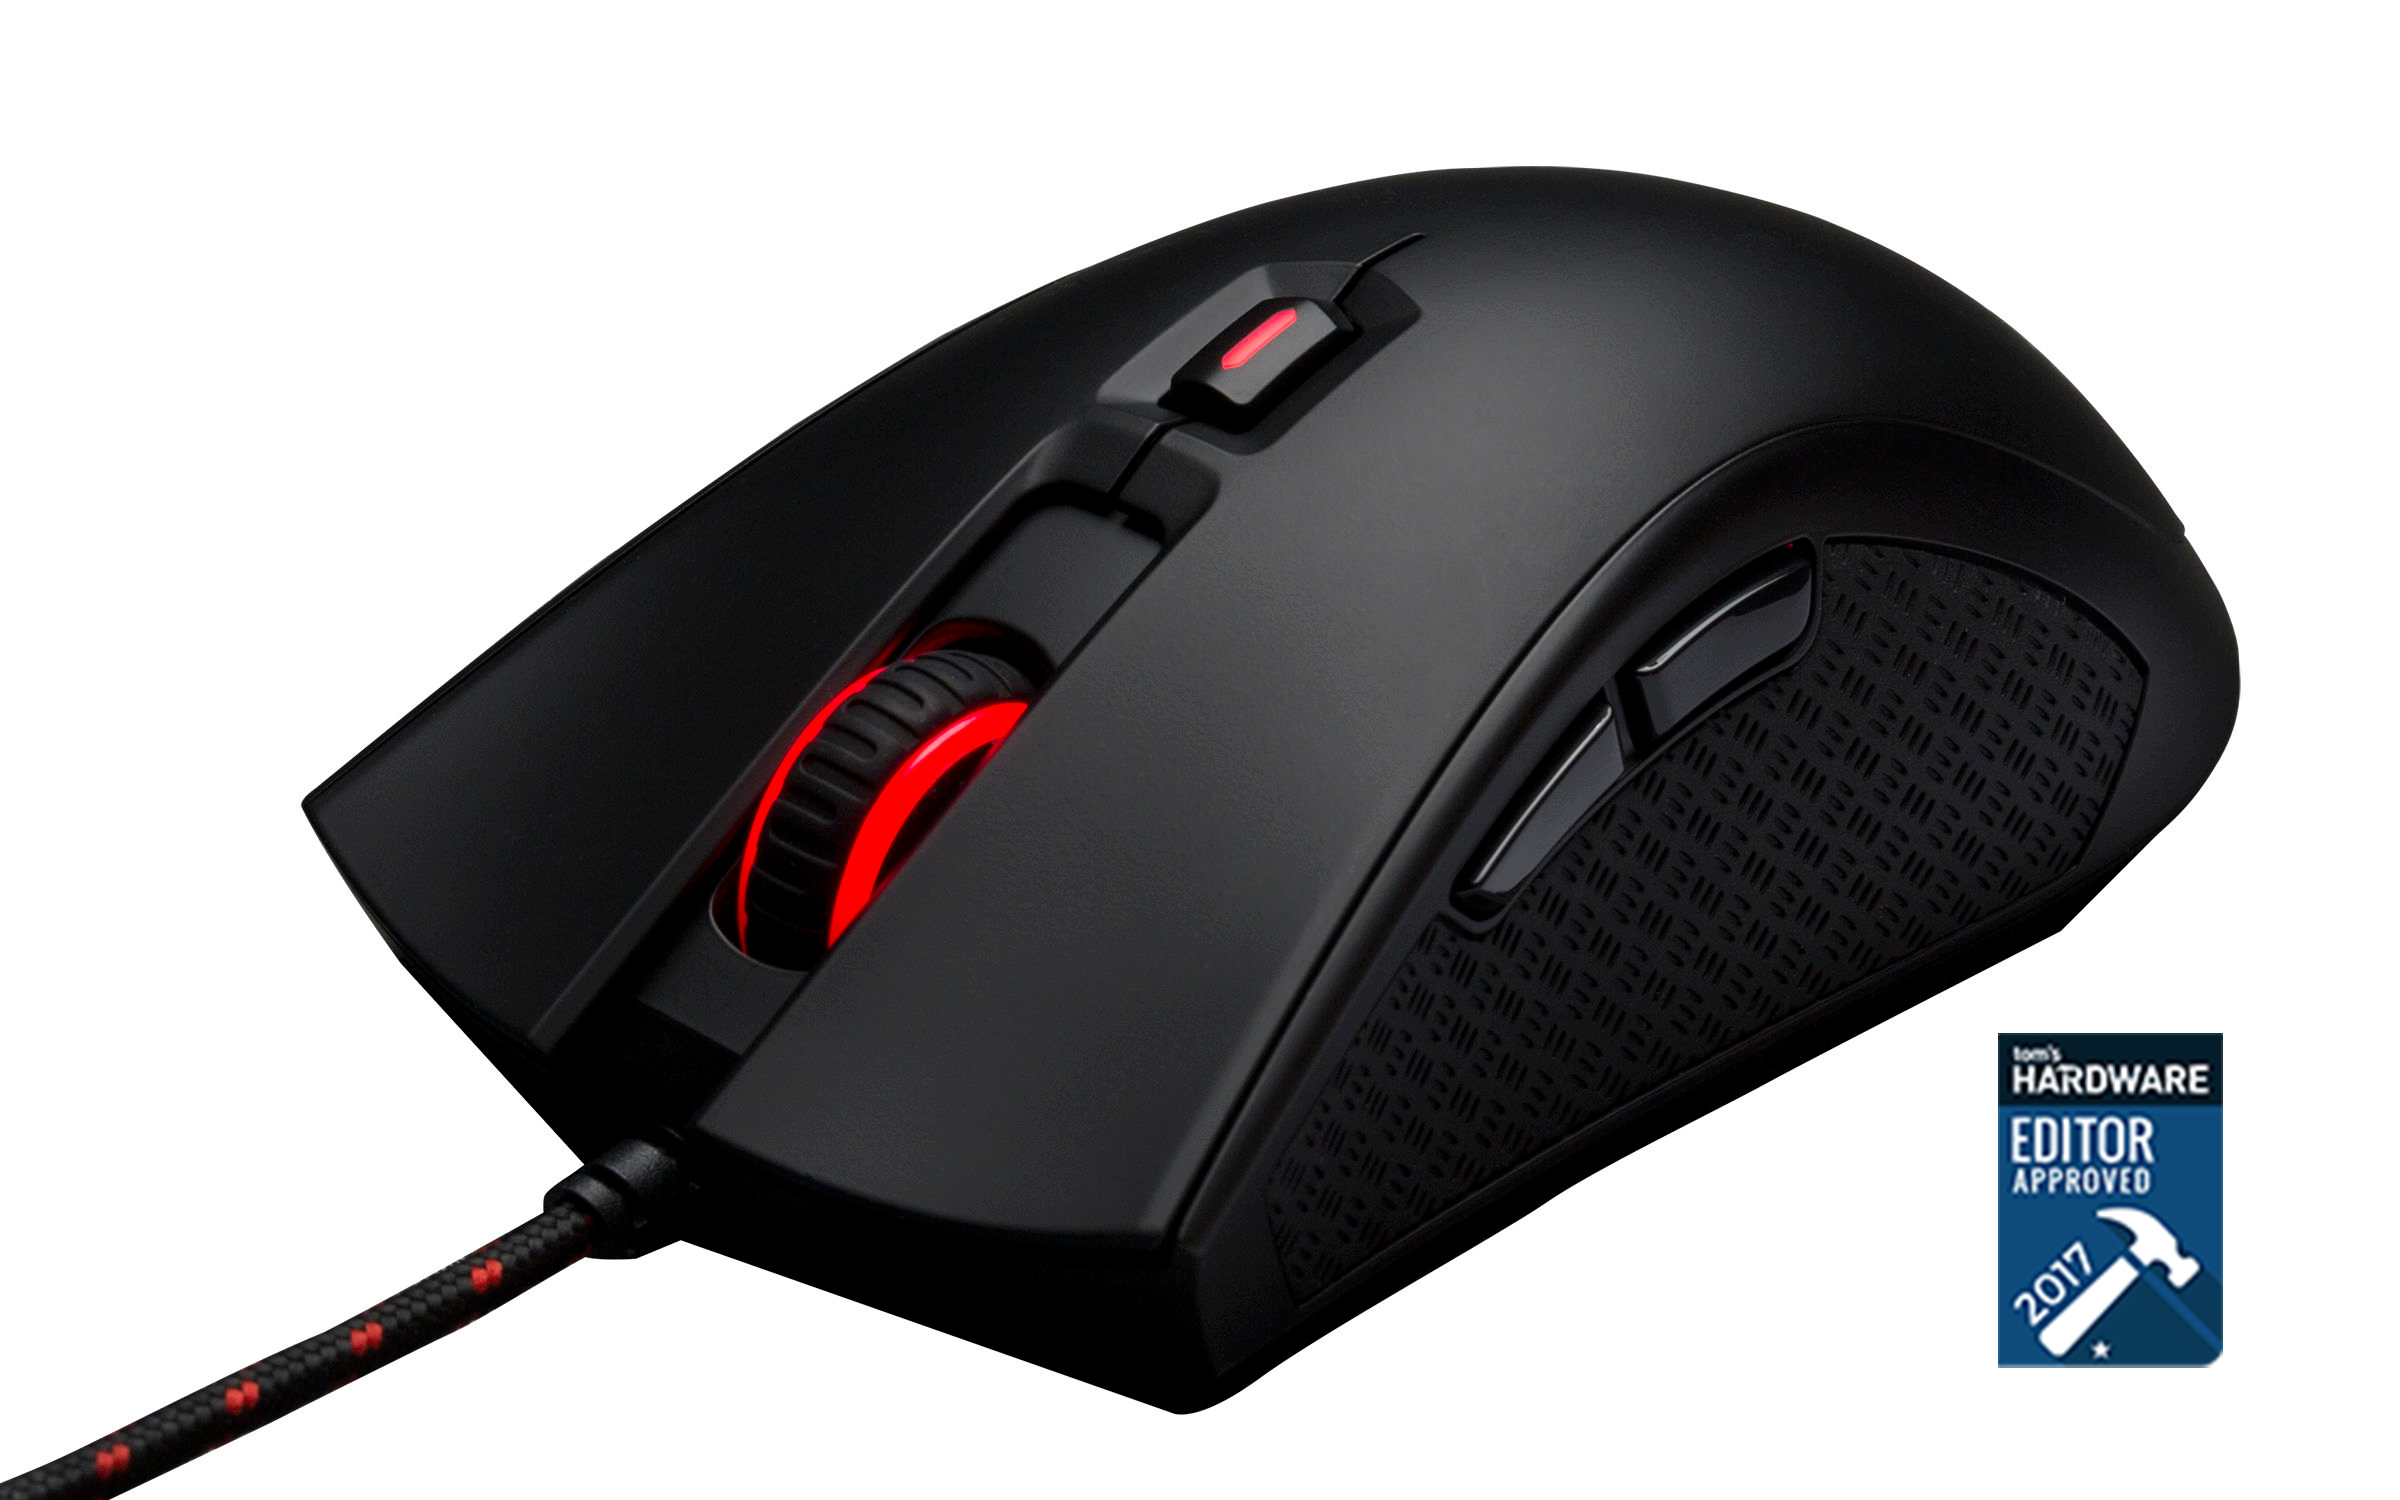 Pulsefire FPS Gaming Mouse